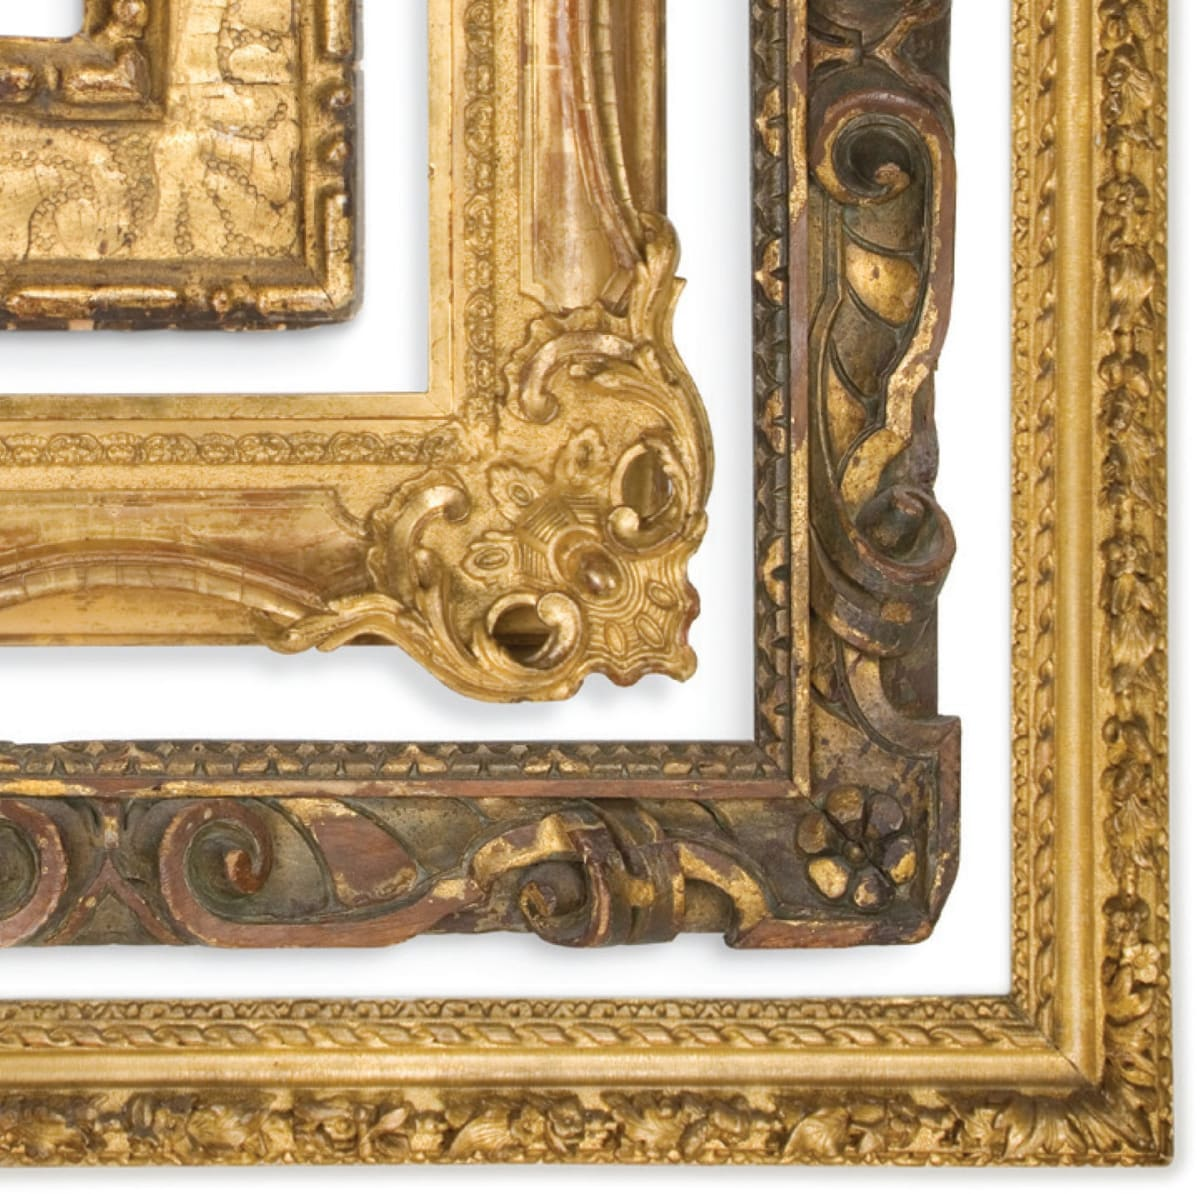 Framing and Conservation